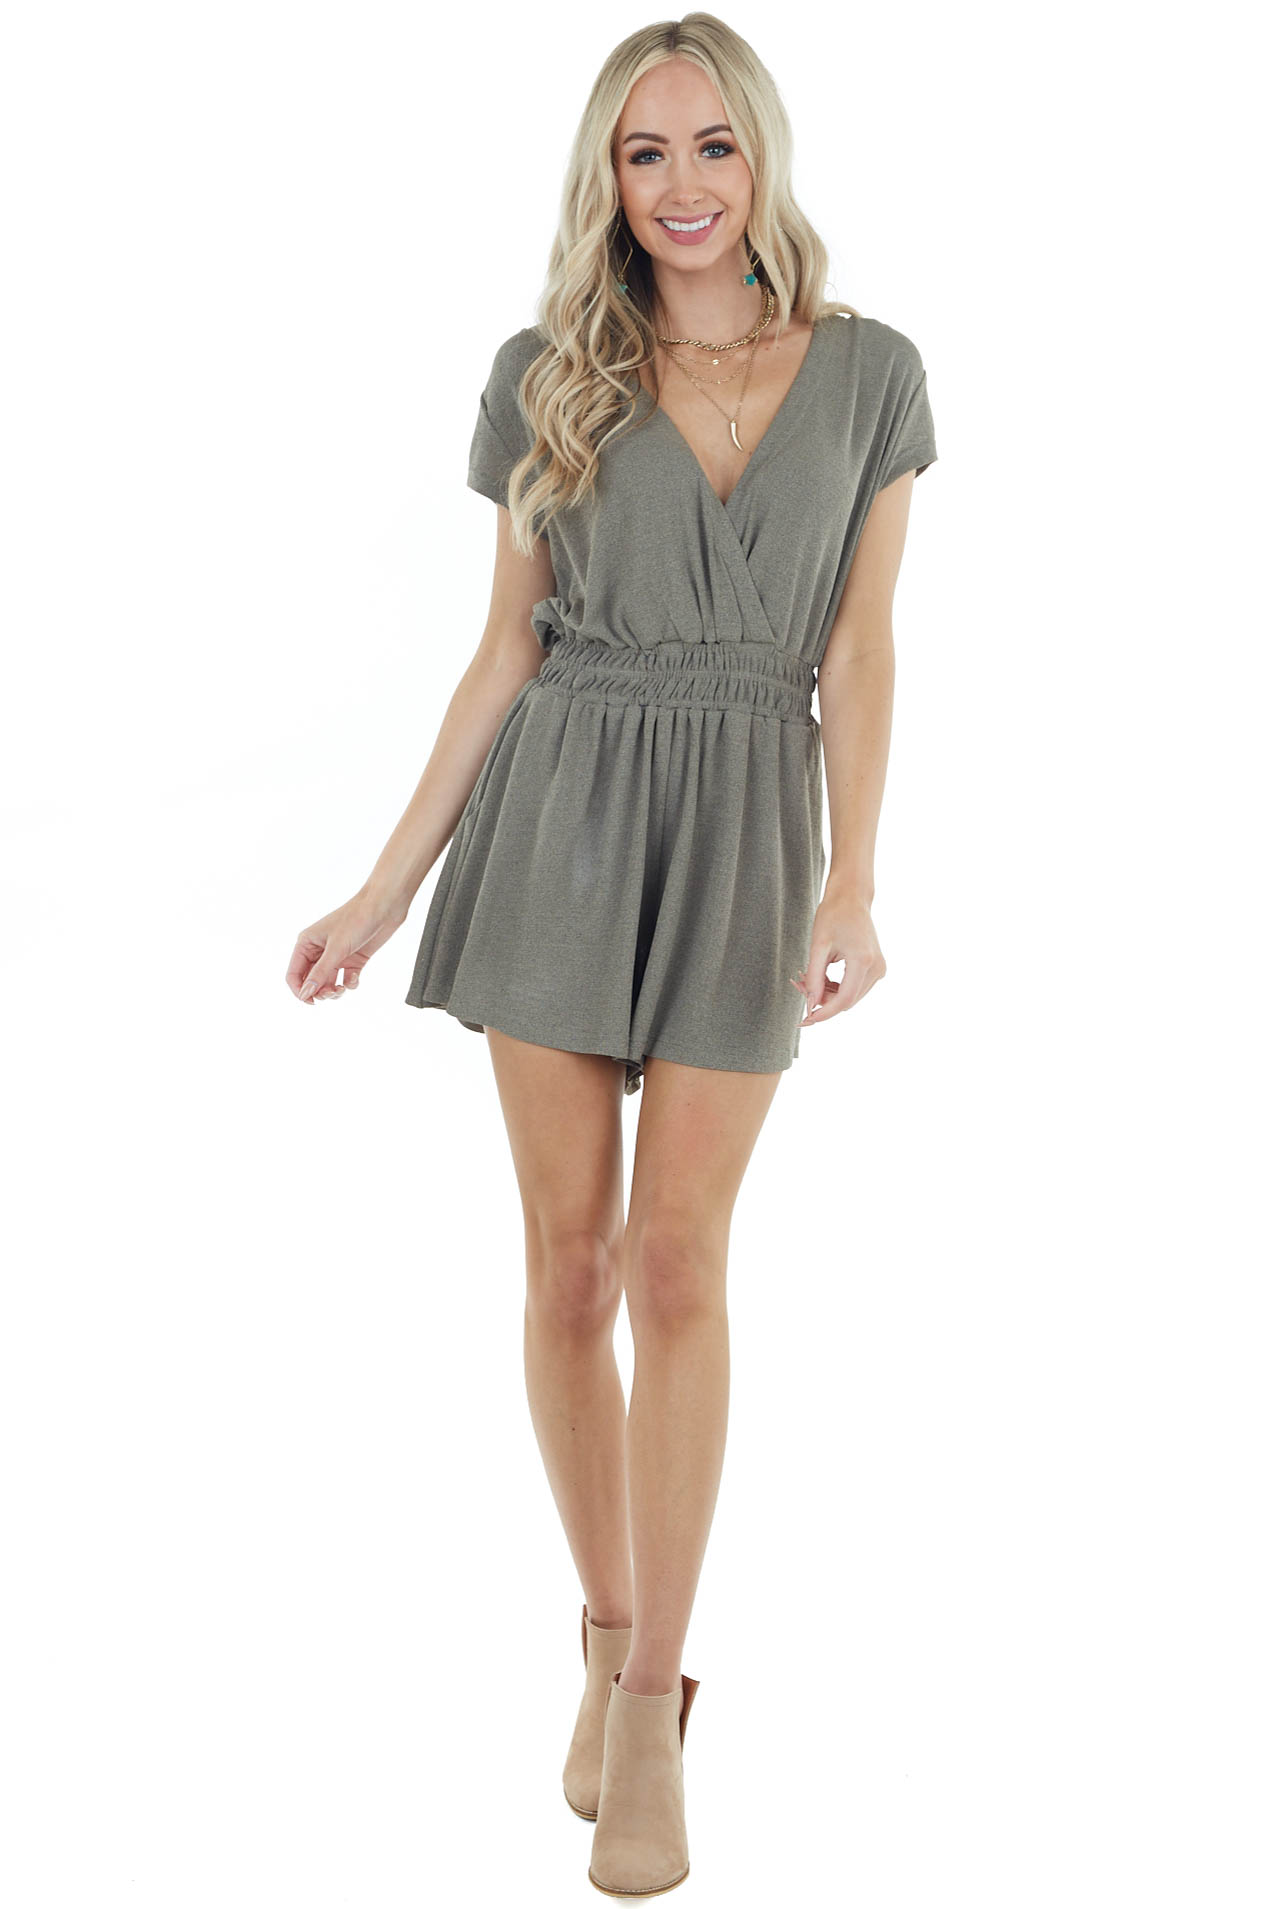 Olive Short Sleeve Surplice Romper with Elastic Waistband